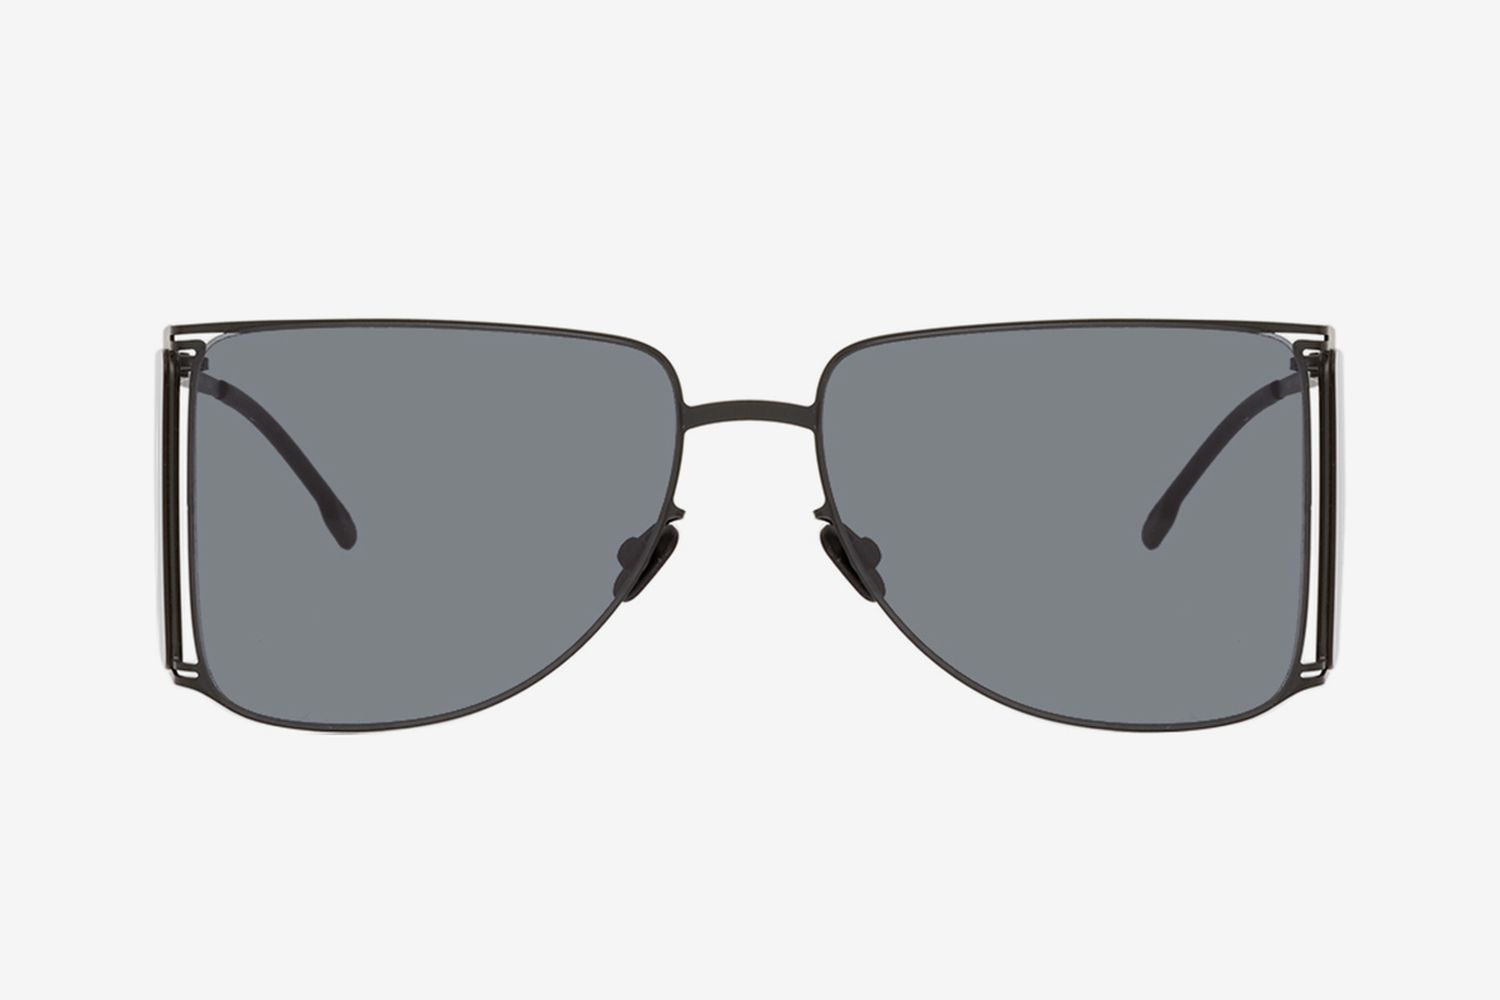 HL002 Sunglasses